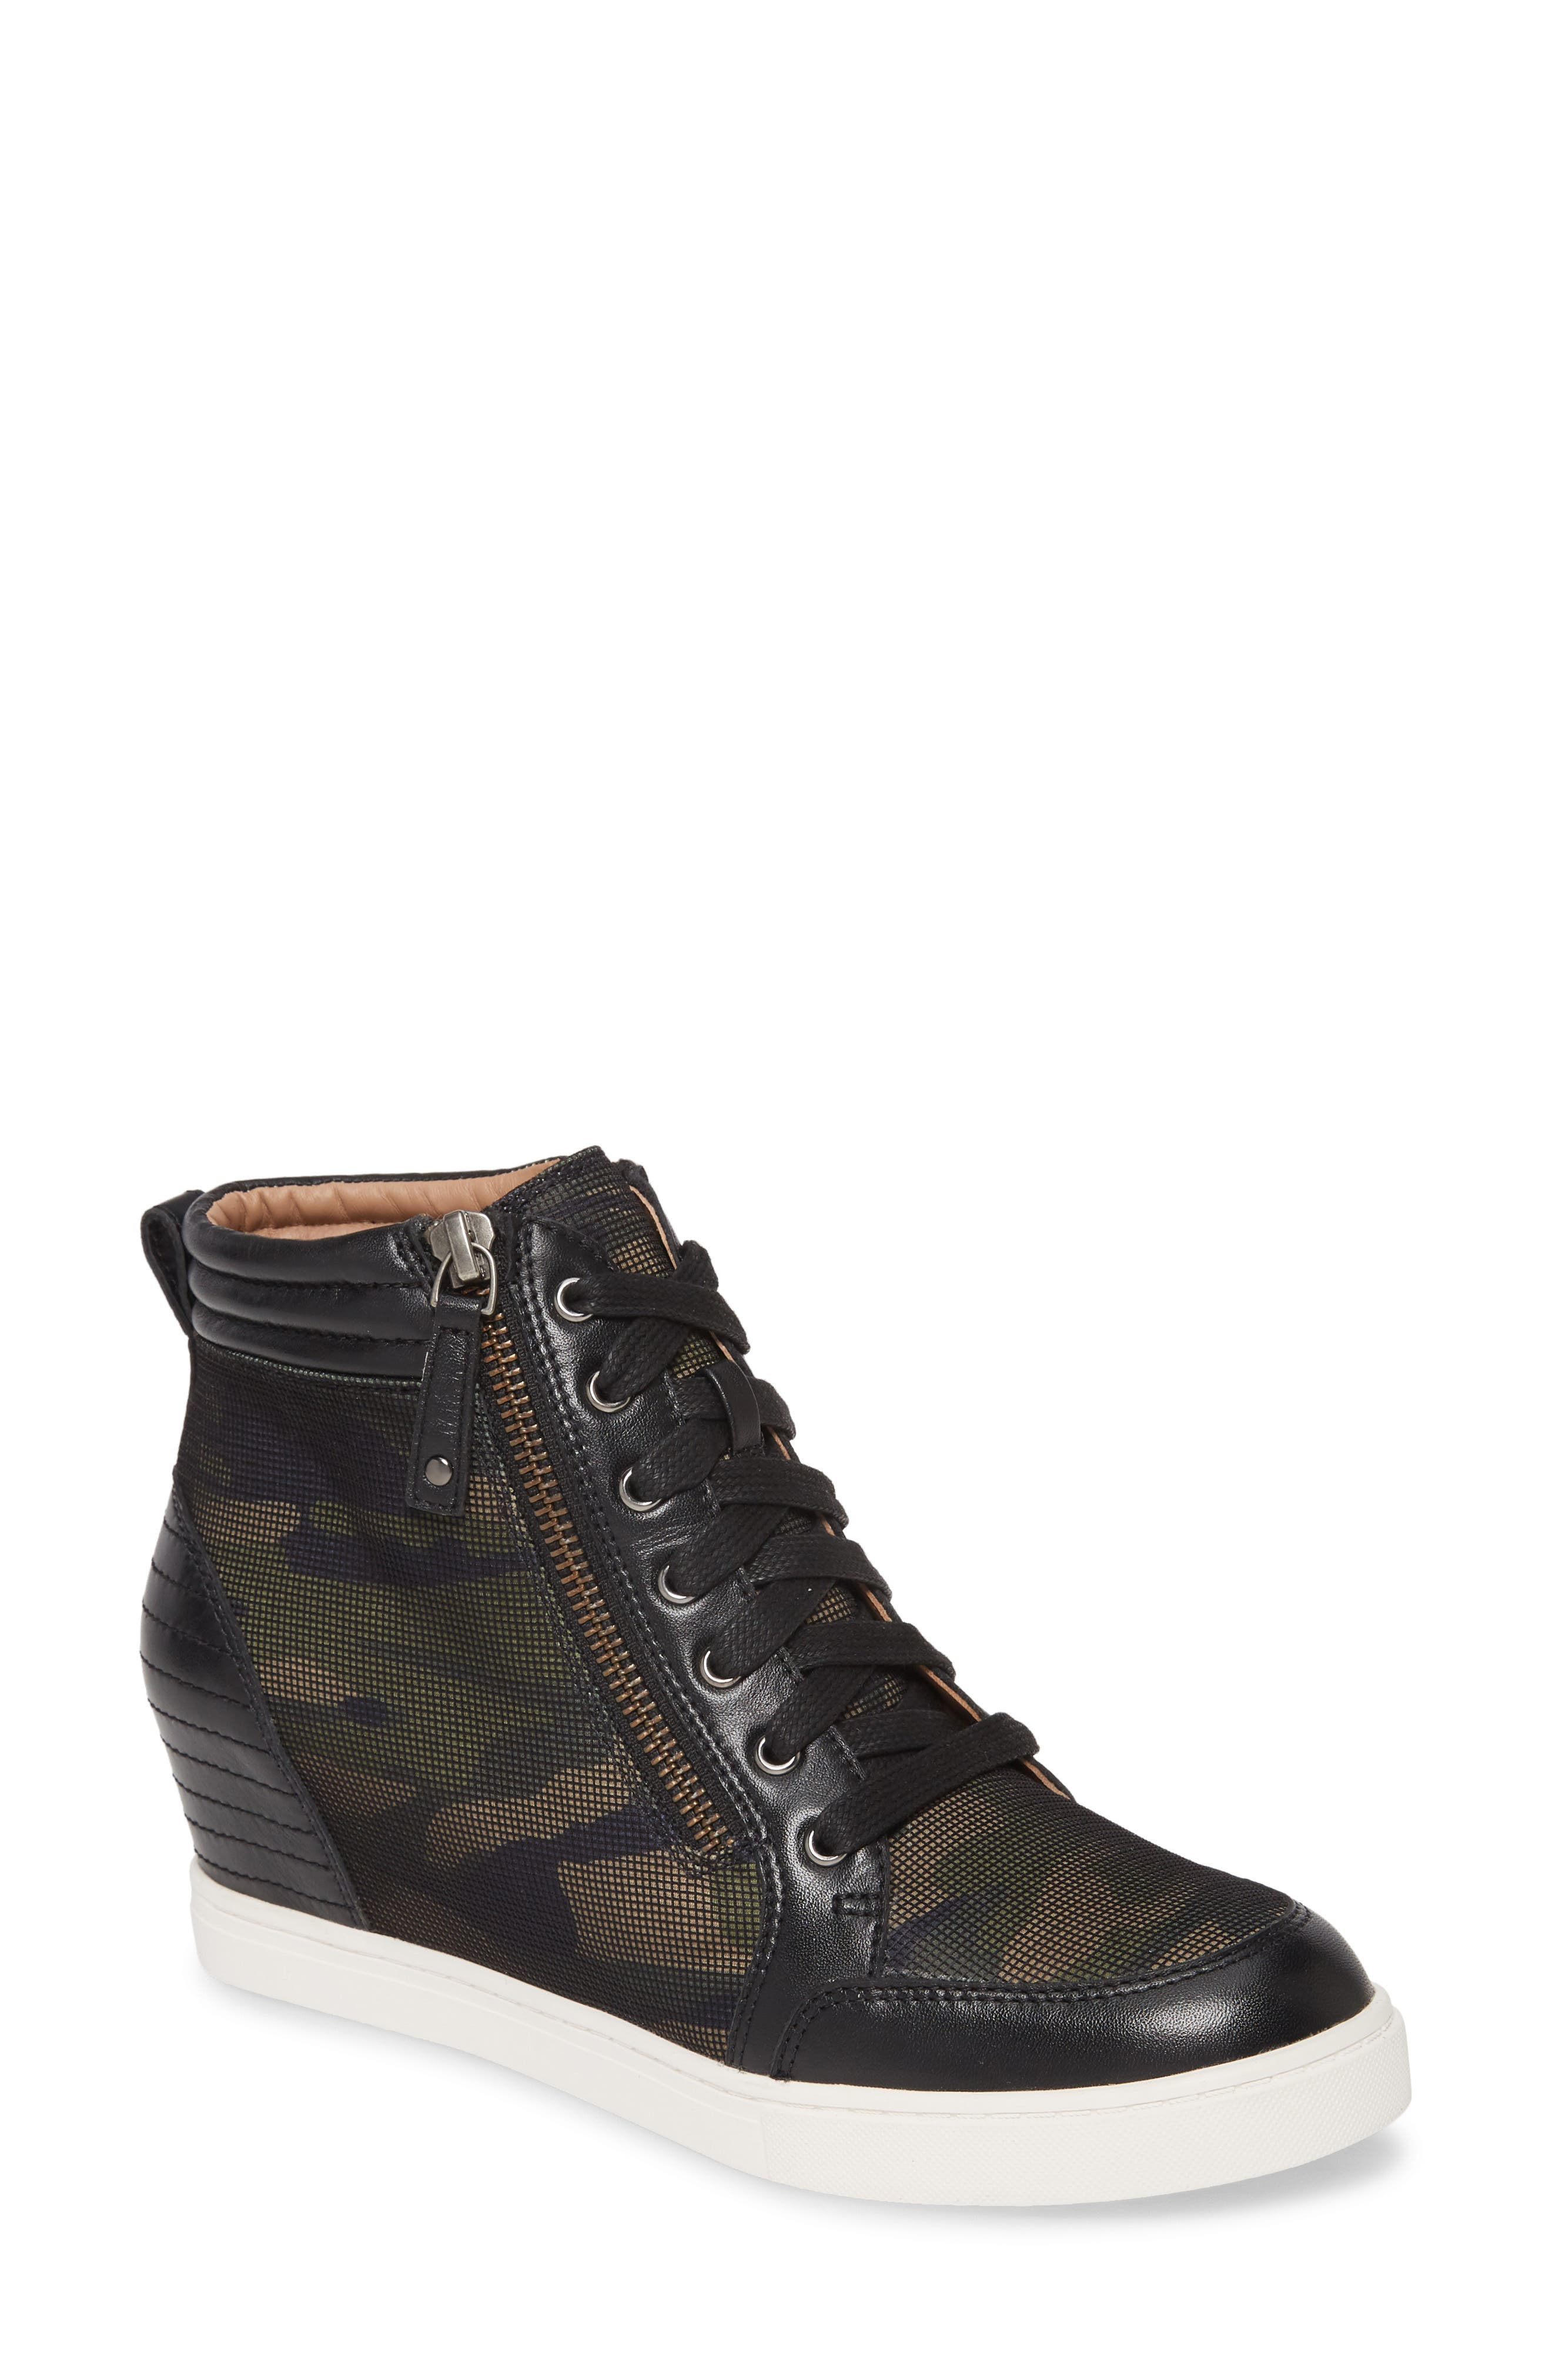 A cool camo print and channel-quilted counter amplify the street-chic appeal of this modern high-top sneaker elevated by a coyly hidden wedge. Style Name: Linea Paolo Niya Wedge Sneaker (Women). Style Number: 5941464 1. Available in stores.